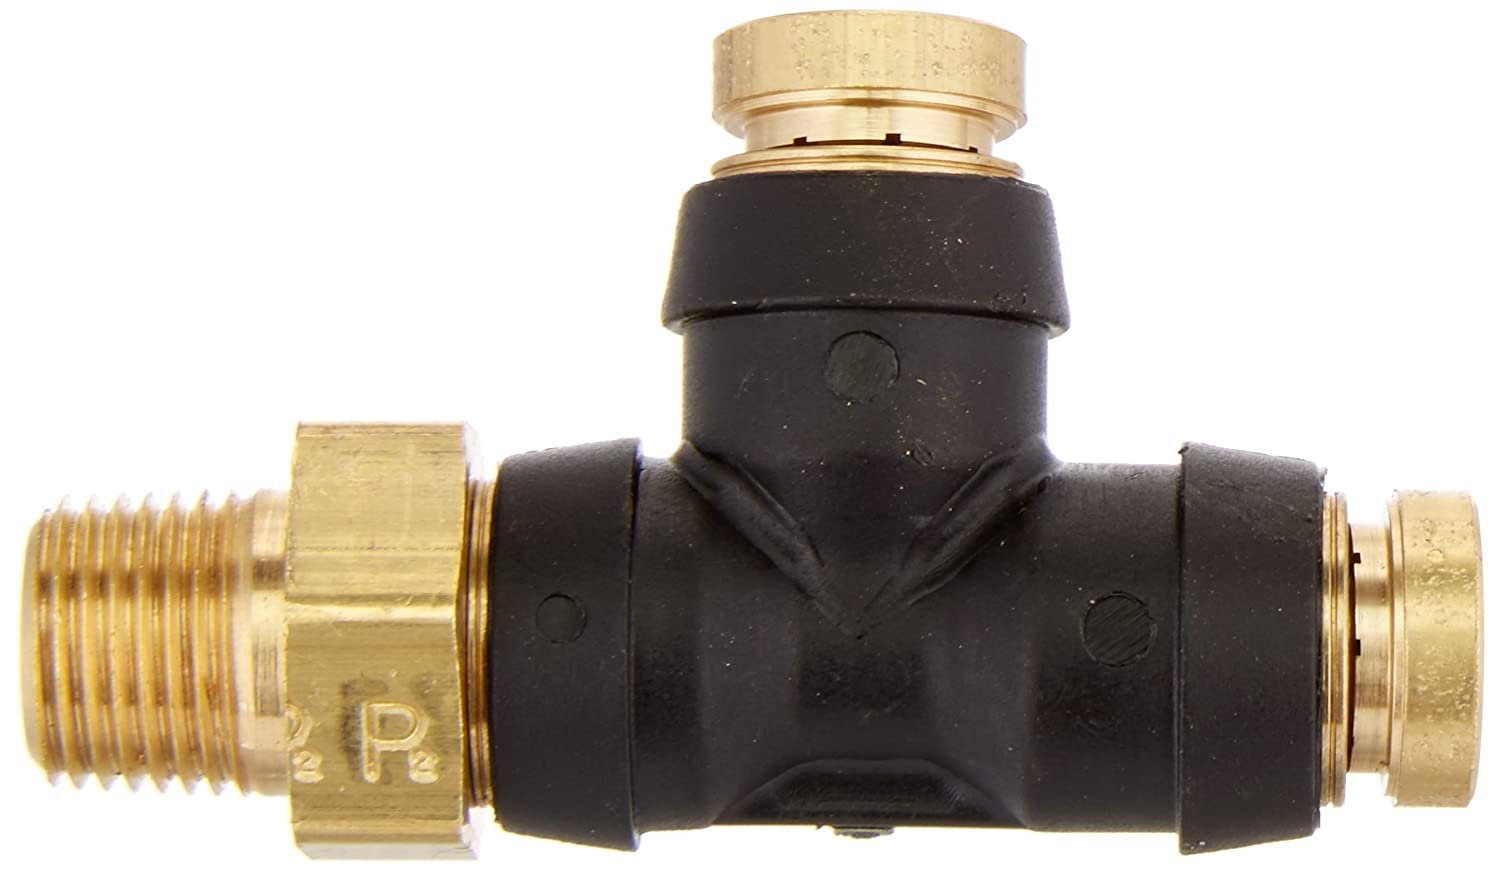 Parker 371PTC-4-2-pk20 Air Brake D.O.T Pack of 20 Tube to Pipe Composite Push-to-Connect Fitting 1//4 and 1//8 Push-to-Connect and Male Pipe Run Tee Pack of 20 PTC 1//4 and 1//8